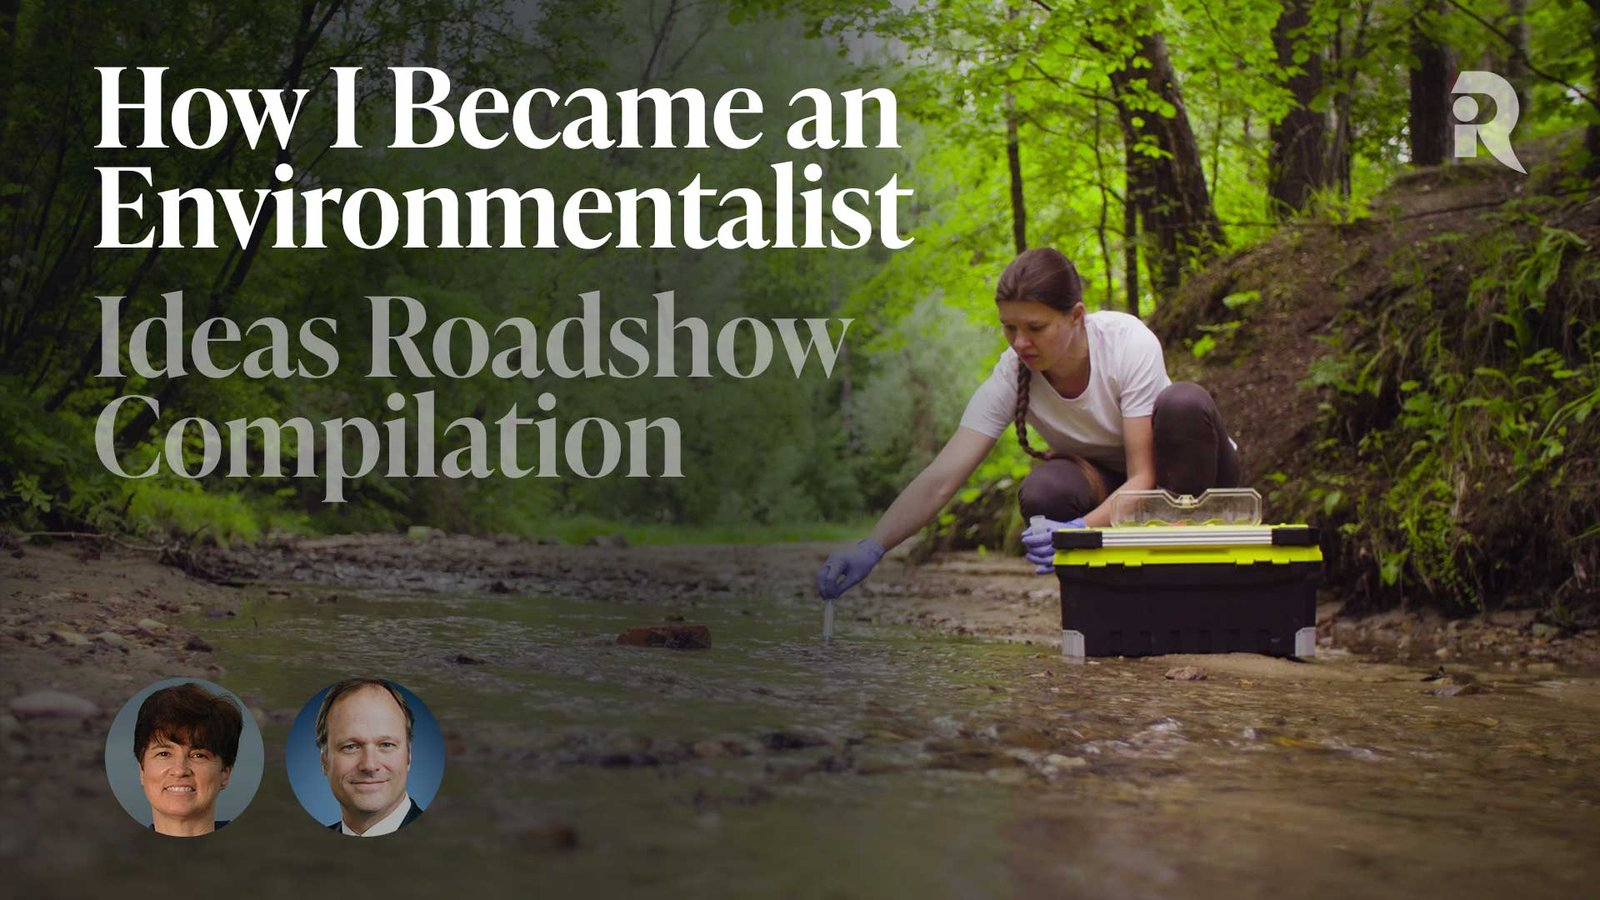 How I Became an Environmentalist